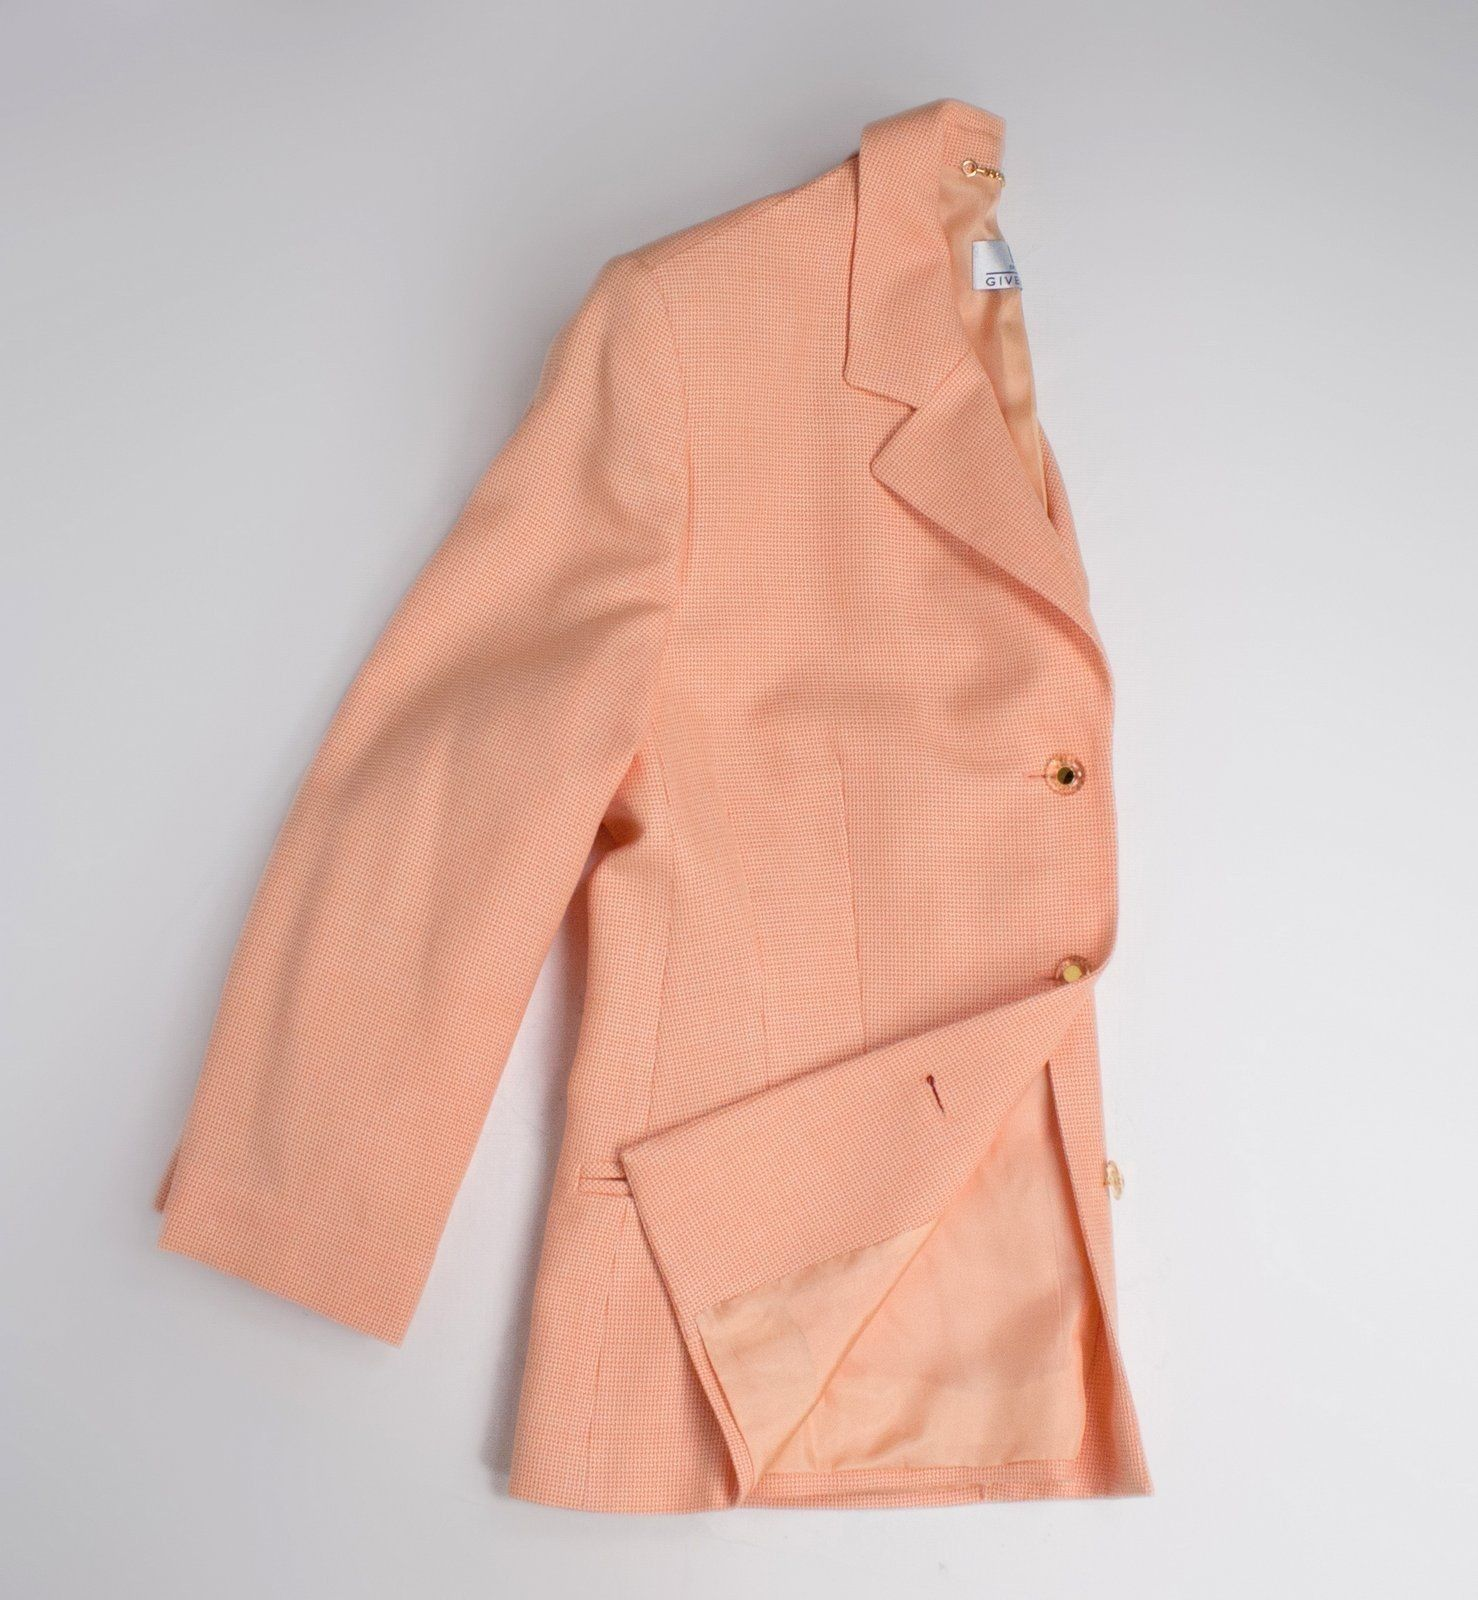 GIVENCHY Coral Summer Blazer, Women's Plus Size L - secondfirst